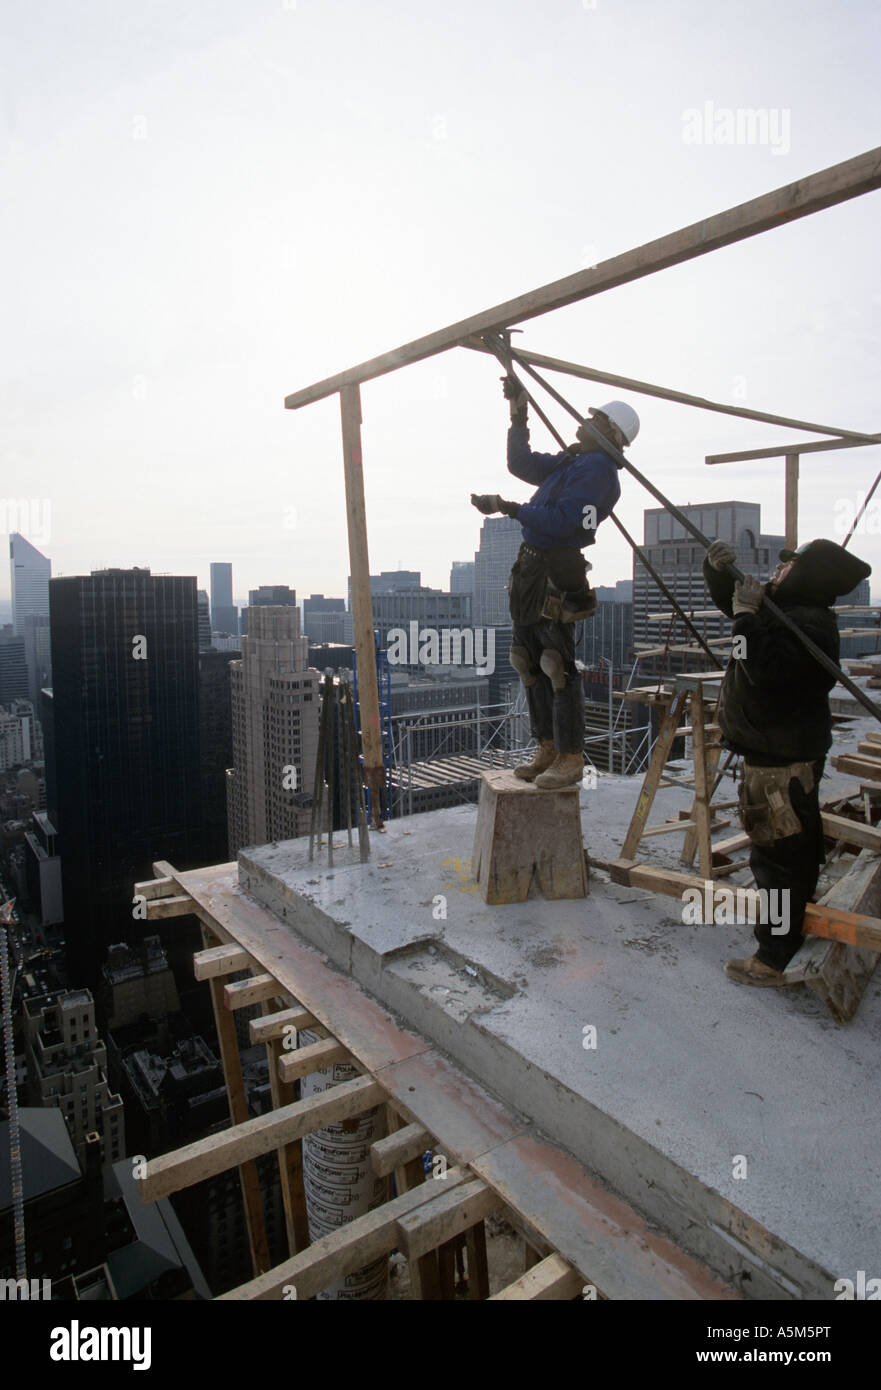 Carpenters build framing for reinforced concrete construction in New York City.